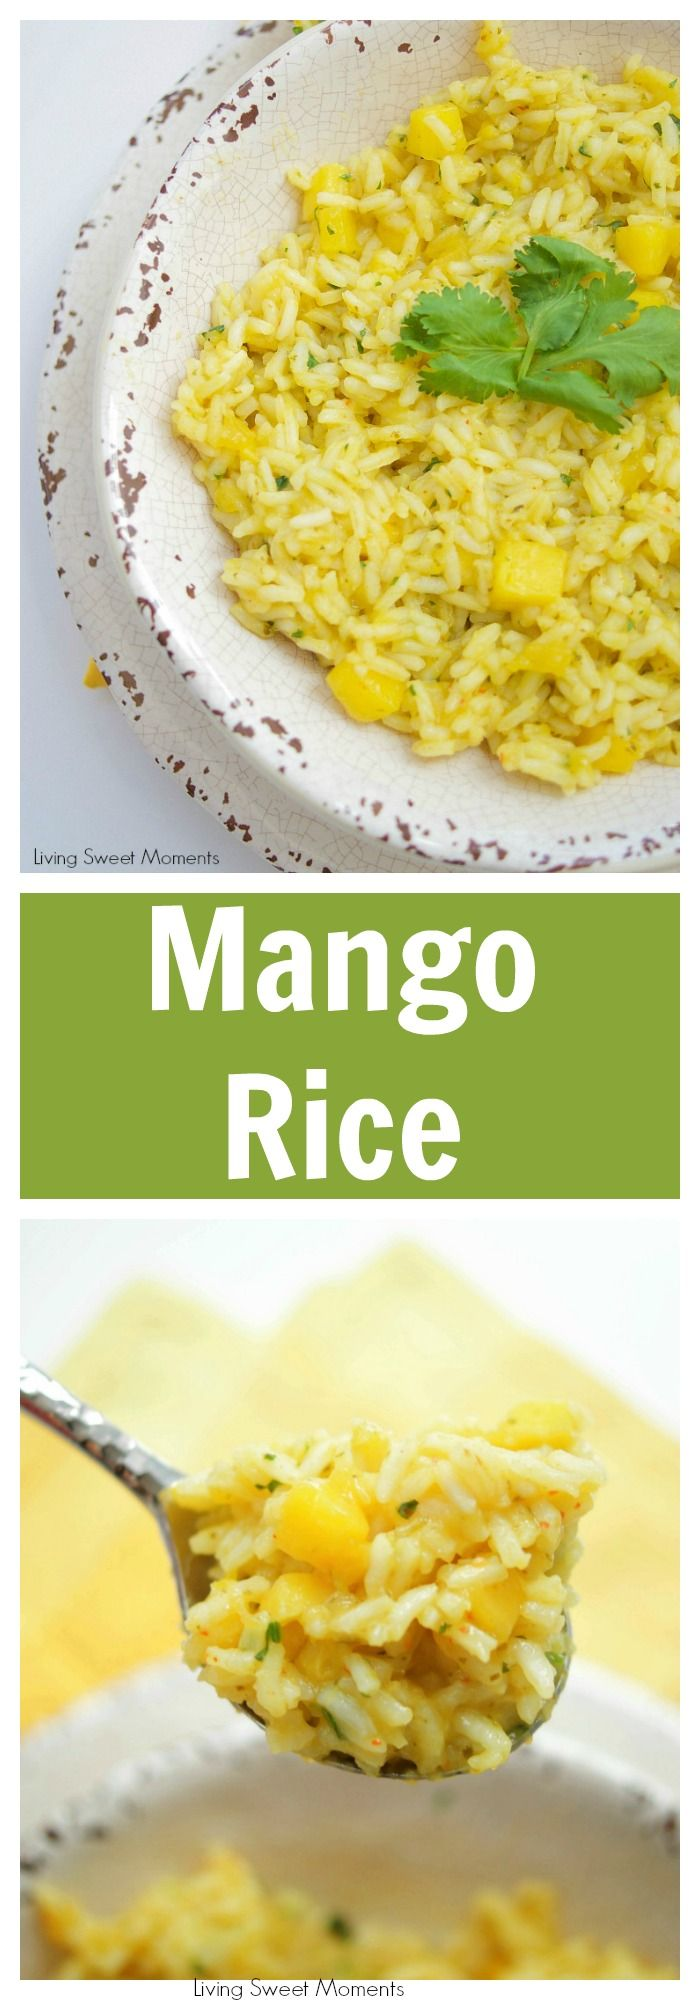 This Spicy Mango Rice recipe is easy to make and delicious. The perfect side dish to any dinner or for entertaining. Made with chili, cilantro, lime & mango #ad